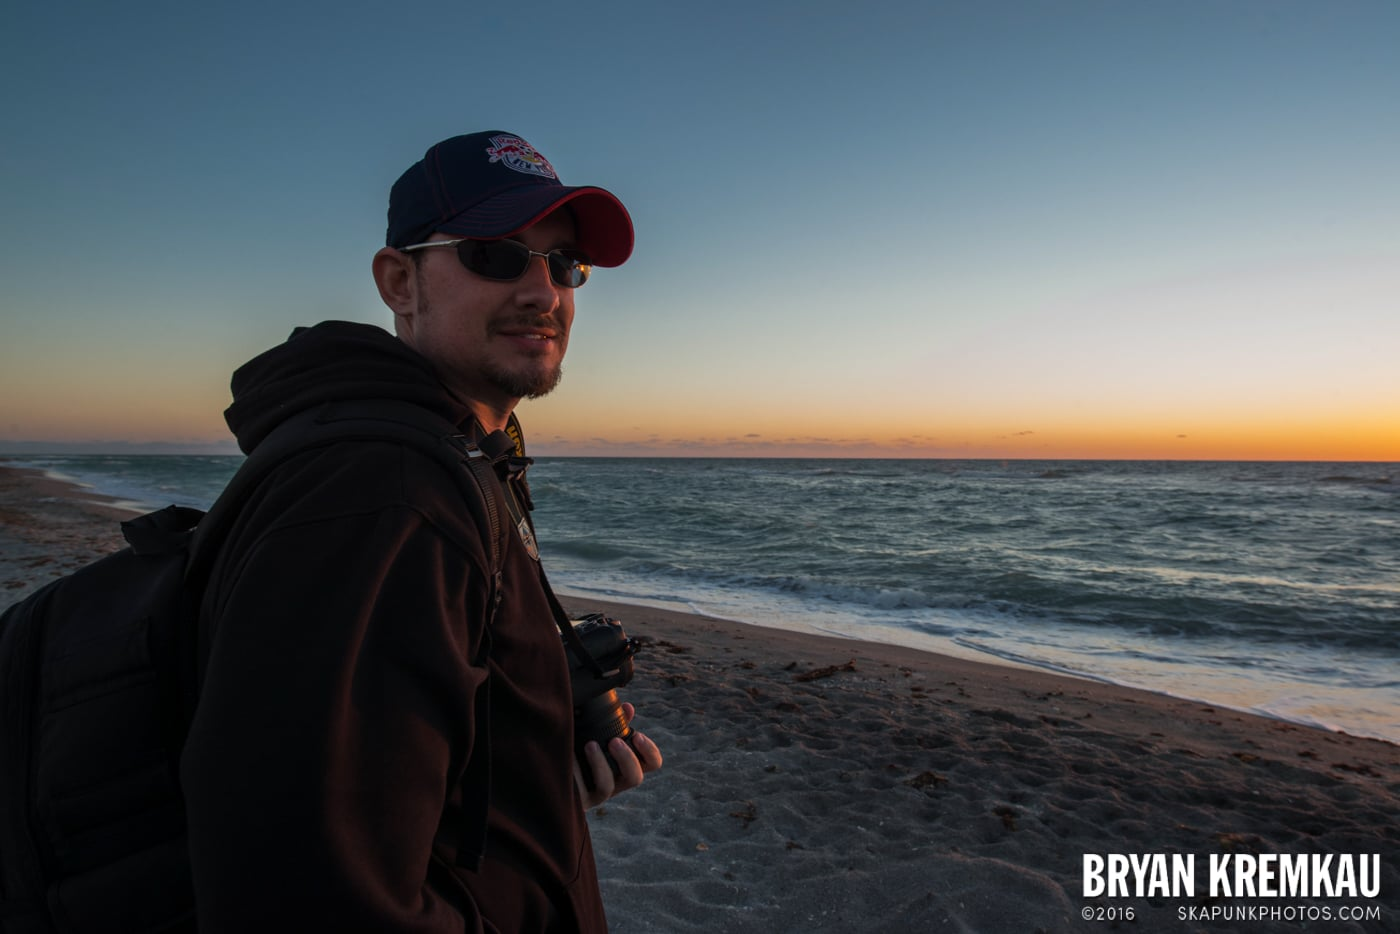 Sunsets, Astrophotography & Birds @ Venice, Florida - 10.25.14 - 11.5.14 (98)